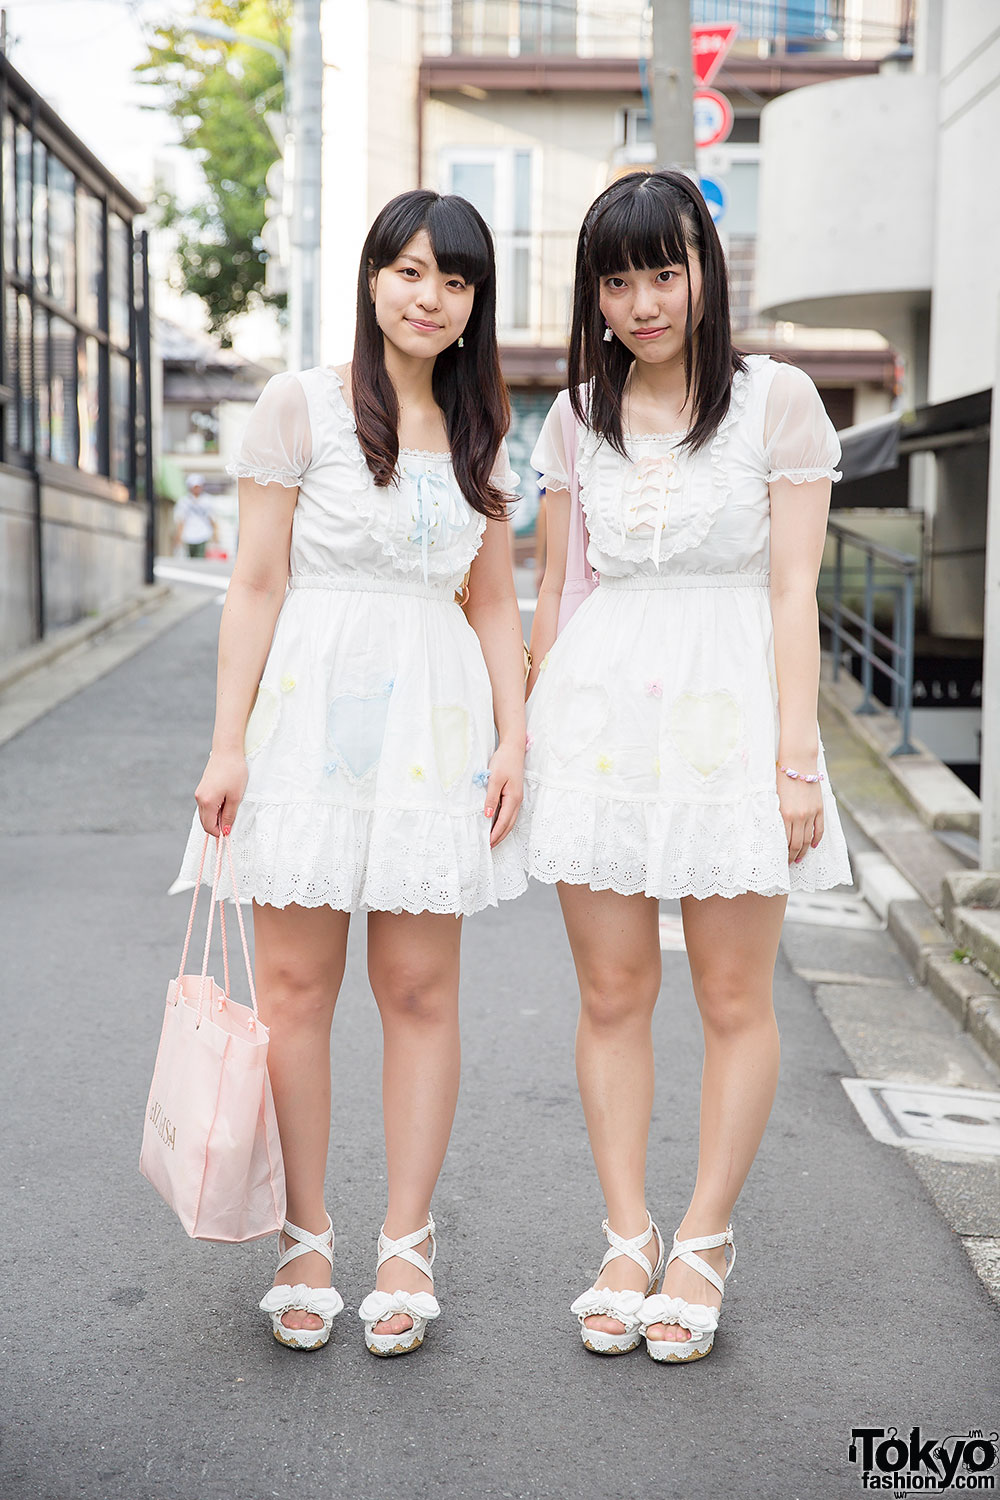 Harajuku Girls in Matching Liz Lisa Dresses w/ Nile Perch ...